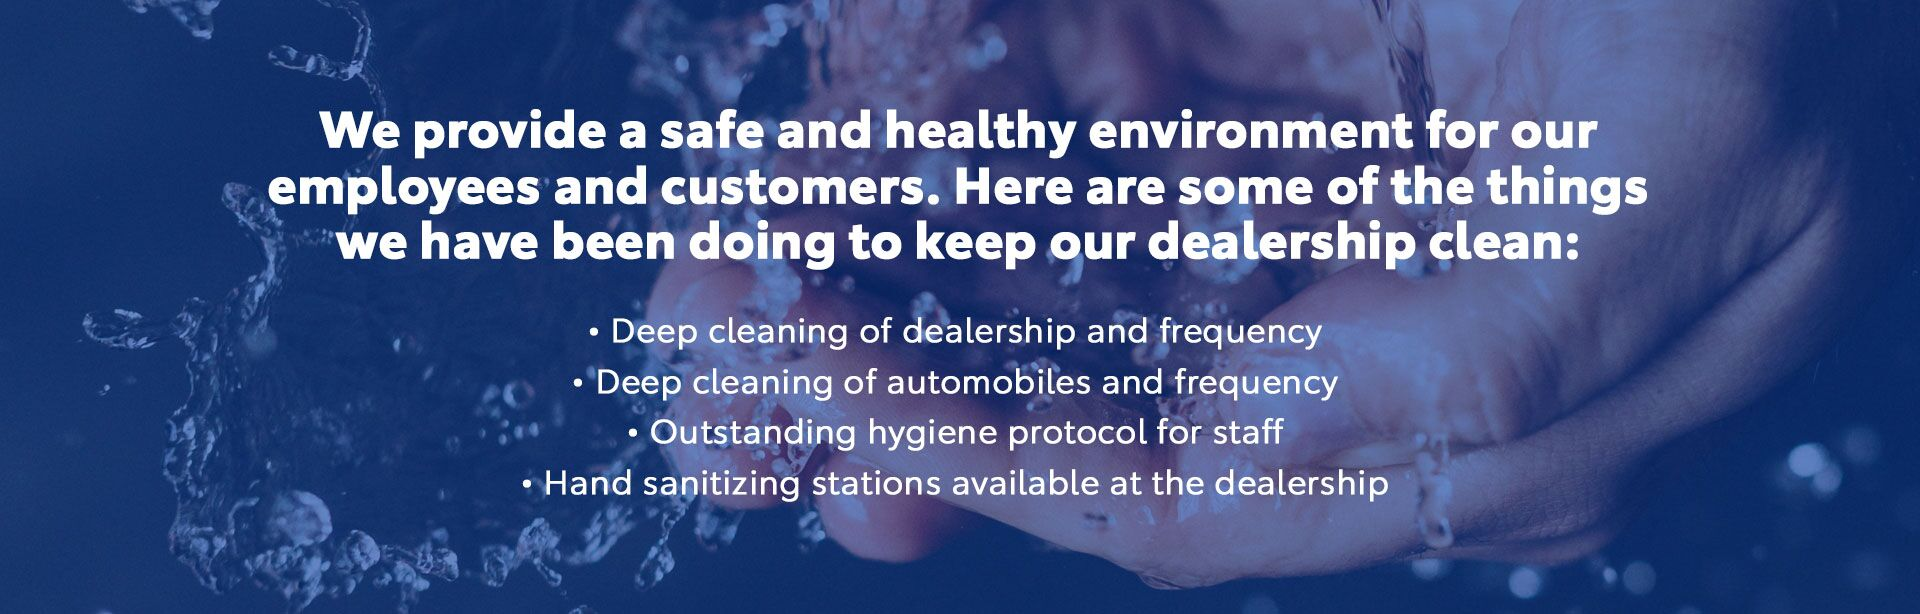 Safe & Healthy Environment